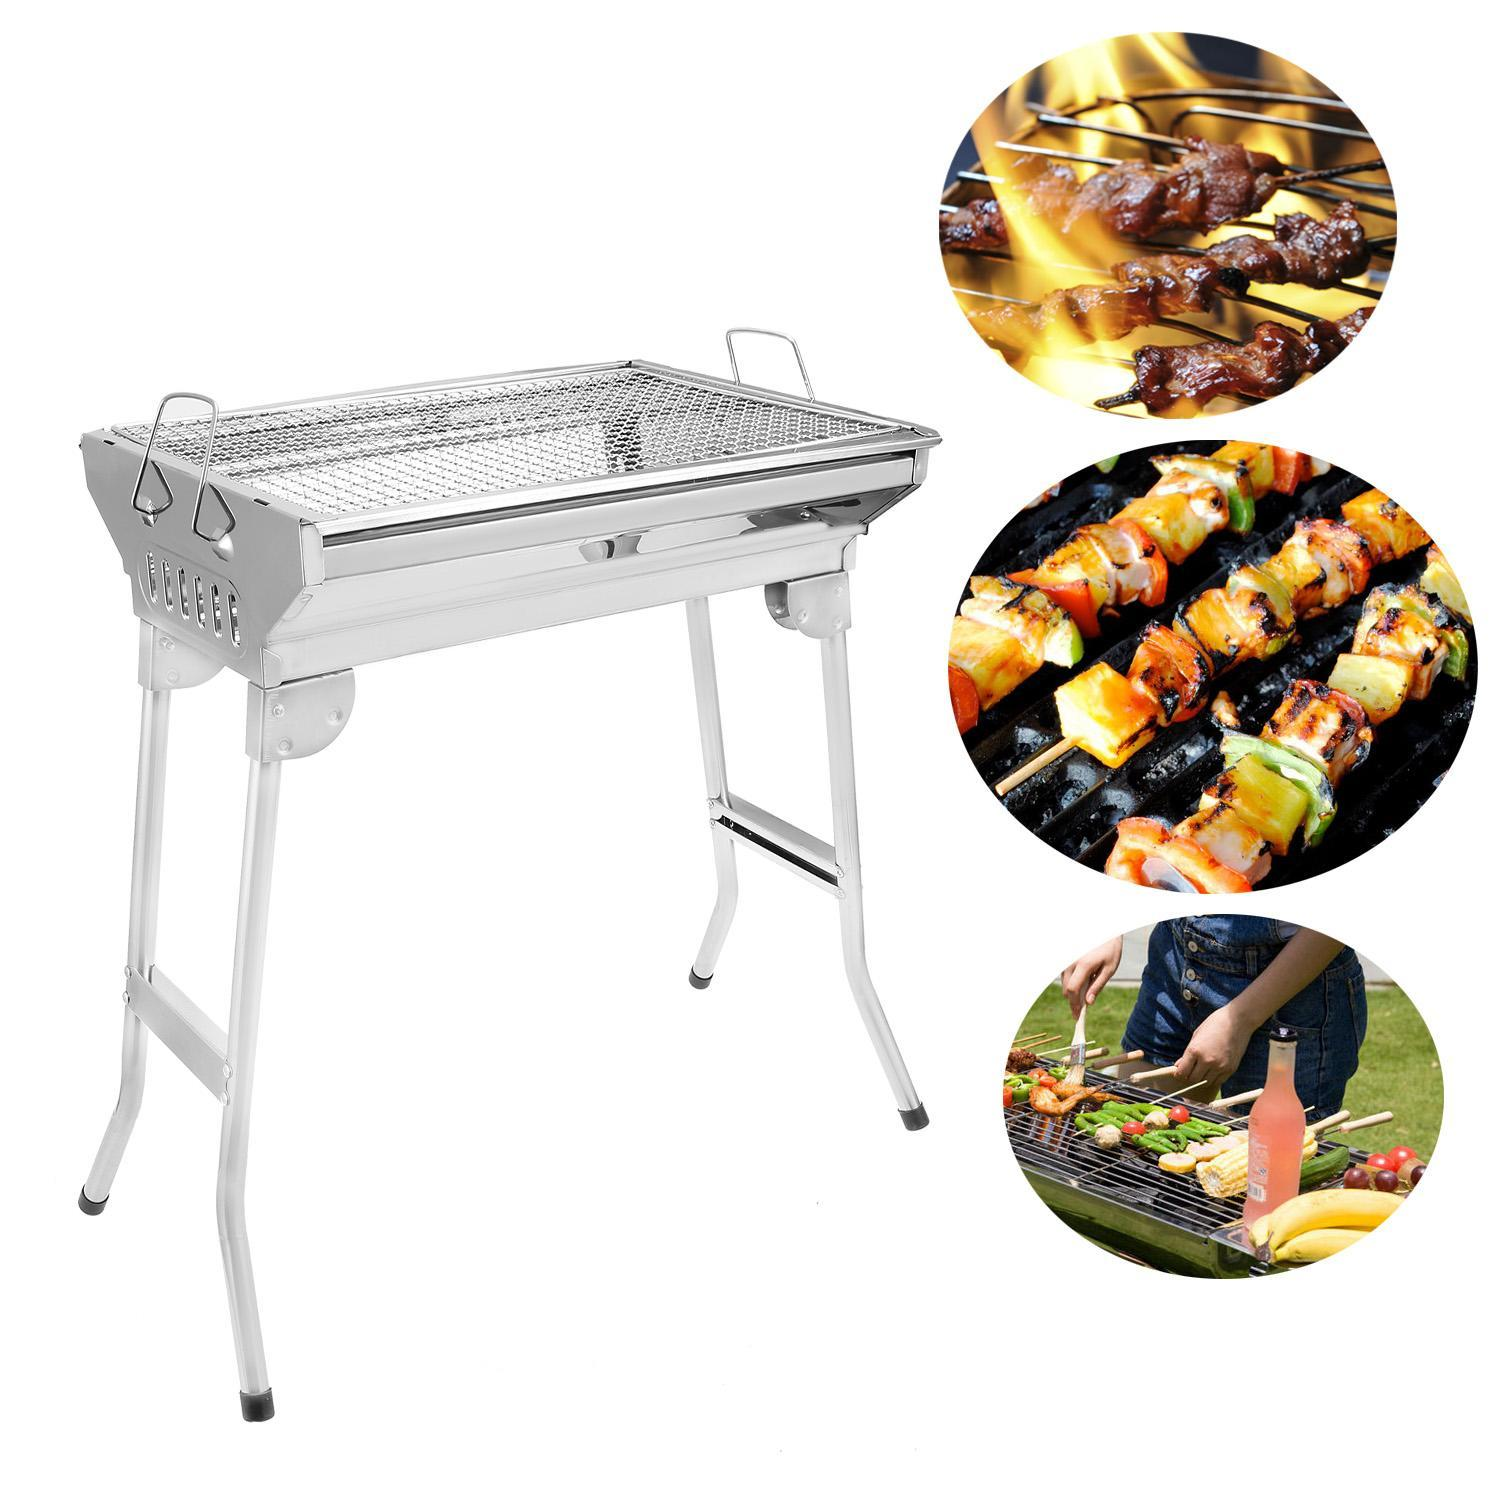 Folding Barbecue Grill Outdoor Picnic And Home Charcoal BBQ Grill Stainless Steel SPHP